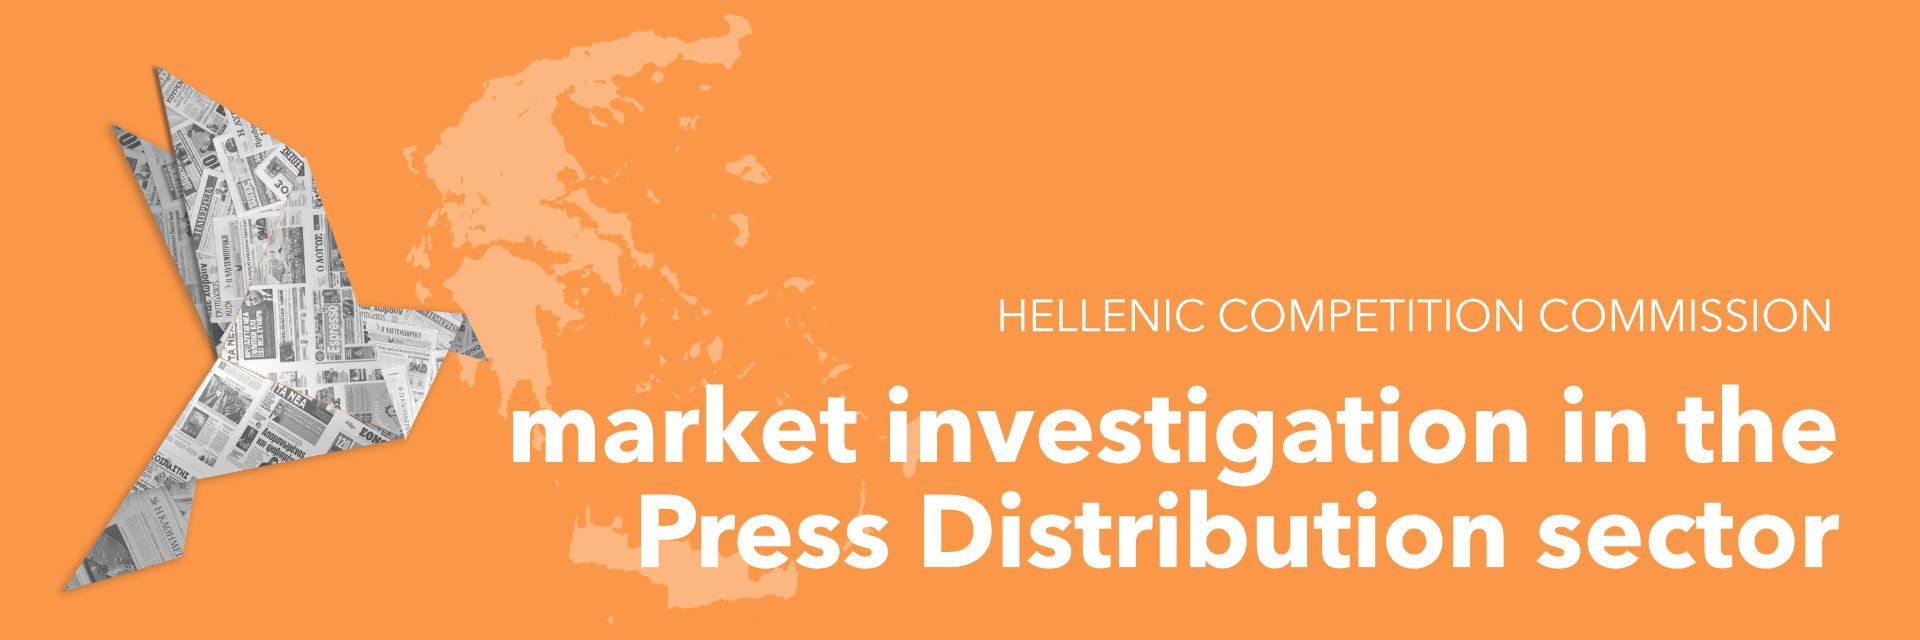 Market Investigation in the Press Distribution Sector